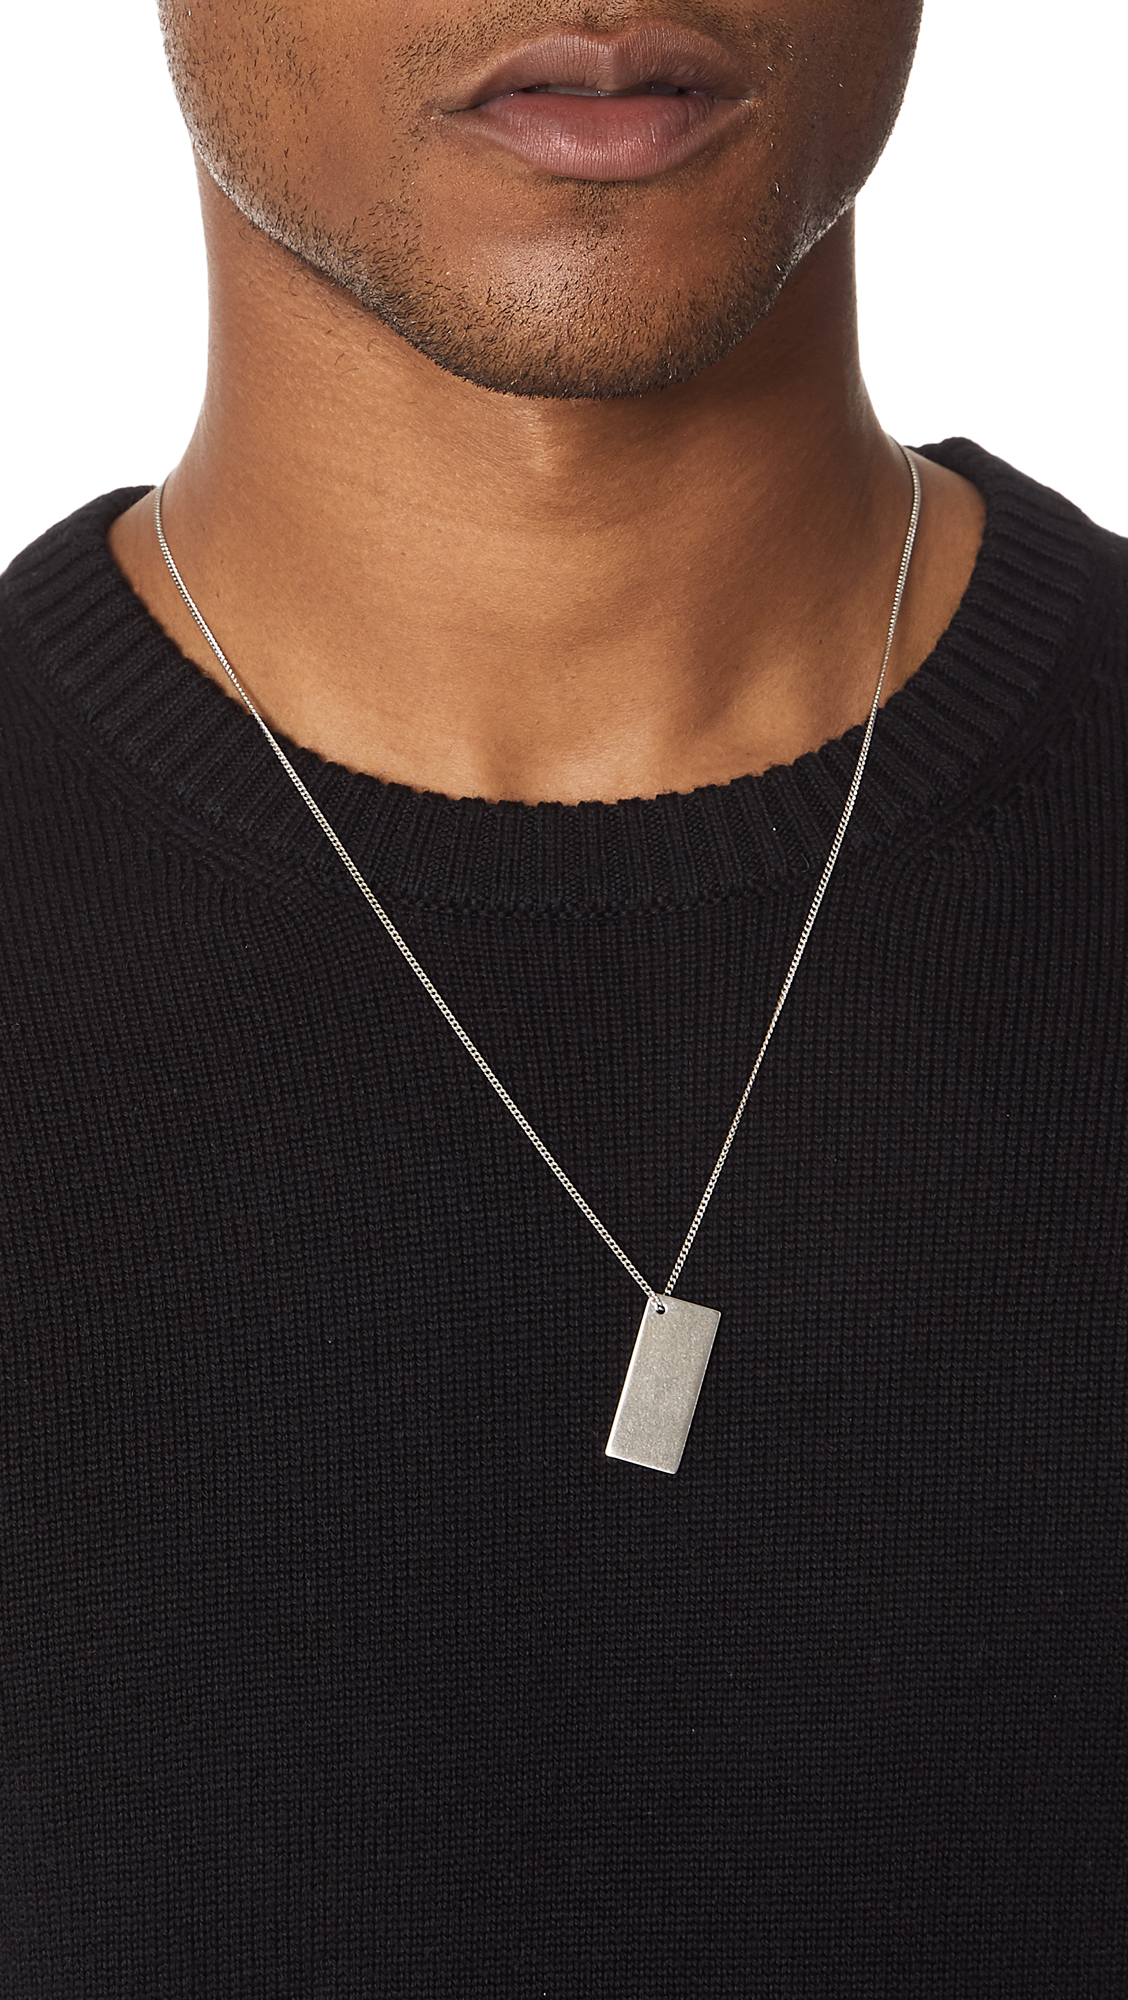 off necklace use htm p a code east for rubik collier v apc dane vp c